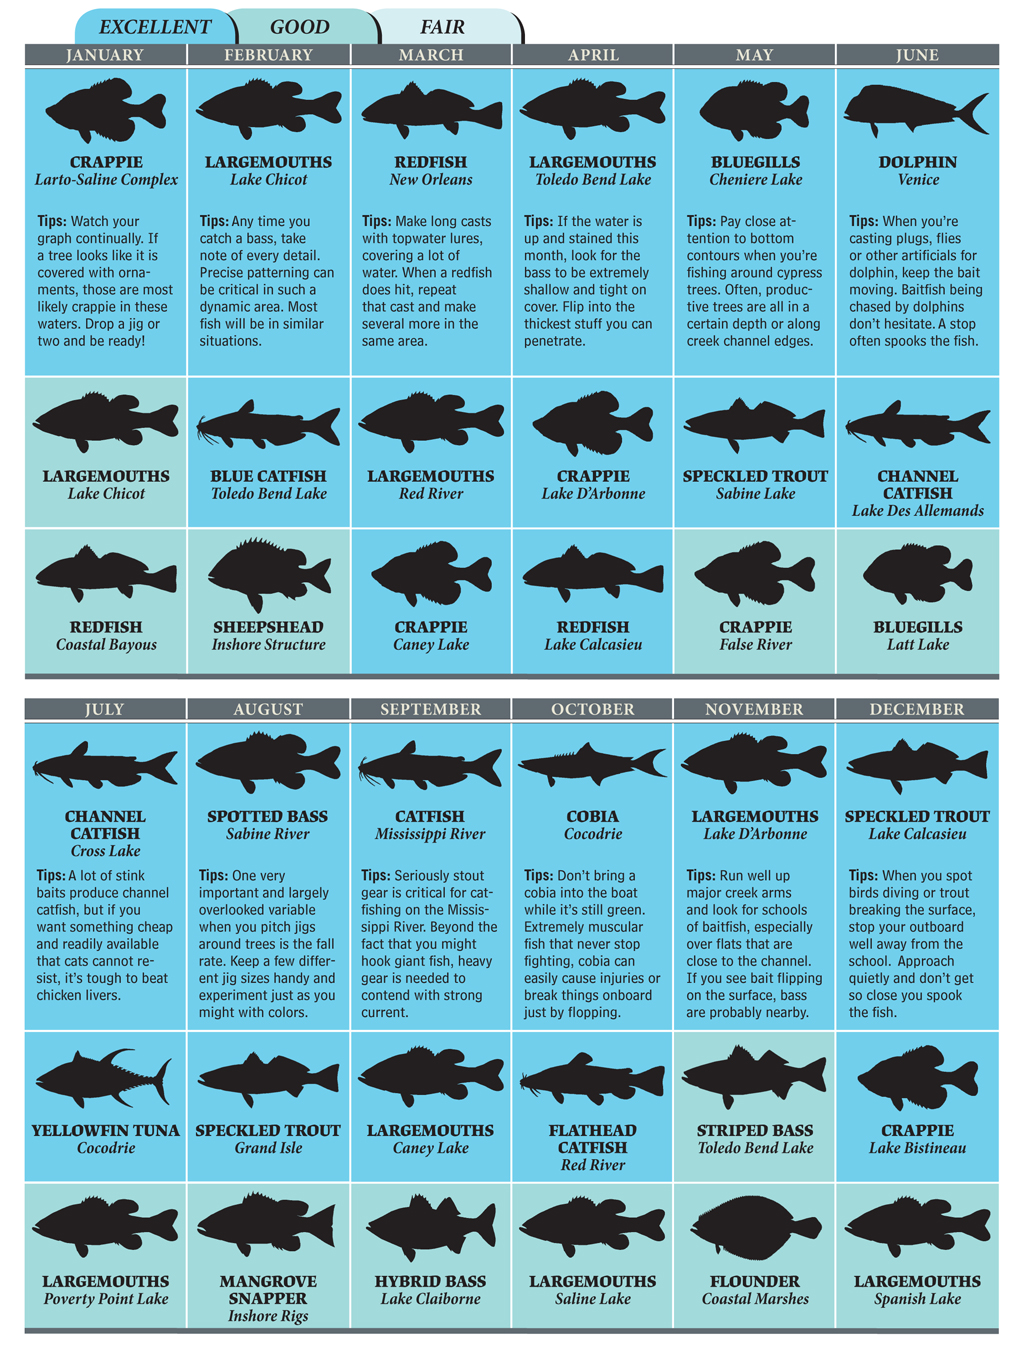 Best bets for louisiana fishing in 2012 game fish for Best time to fish calendar